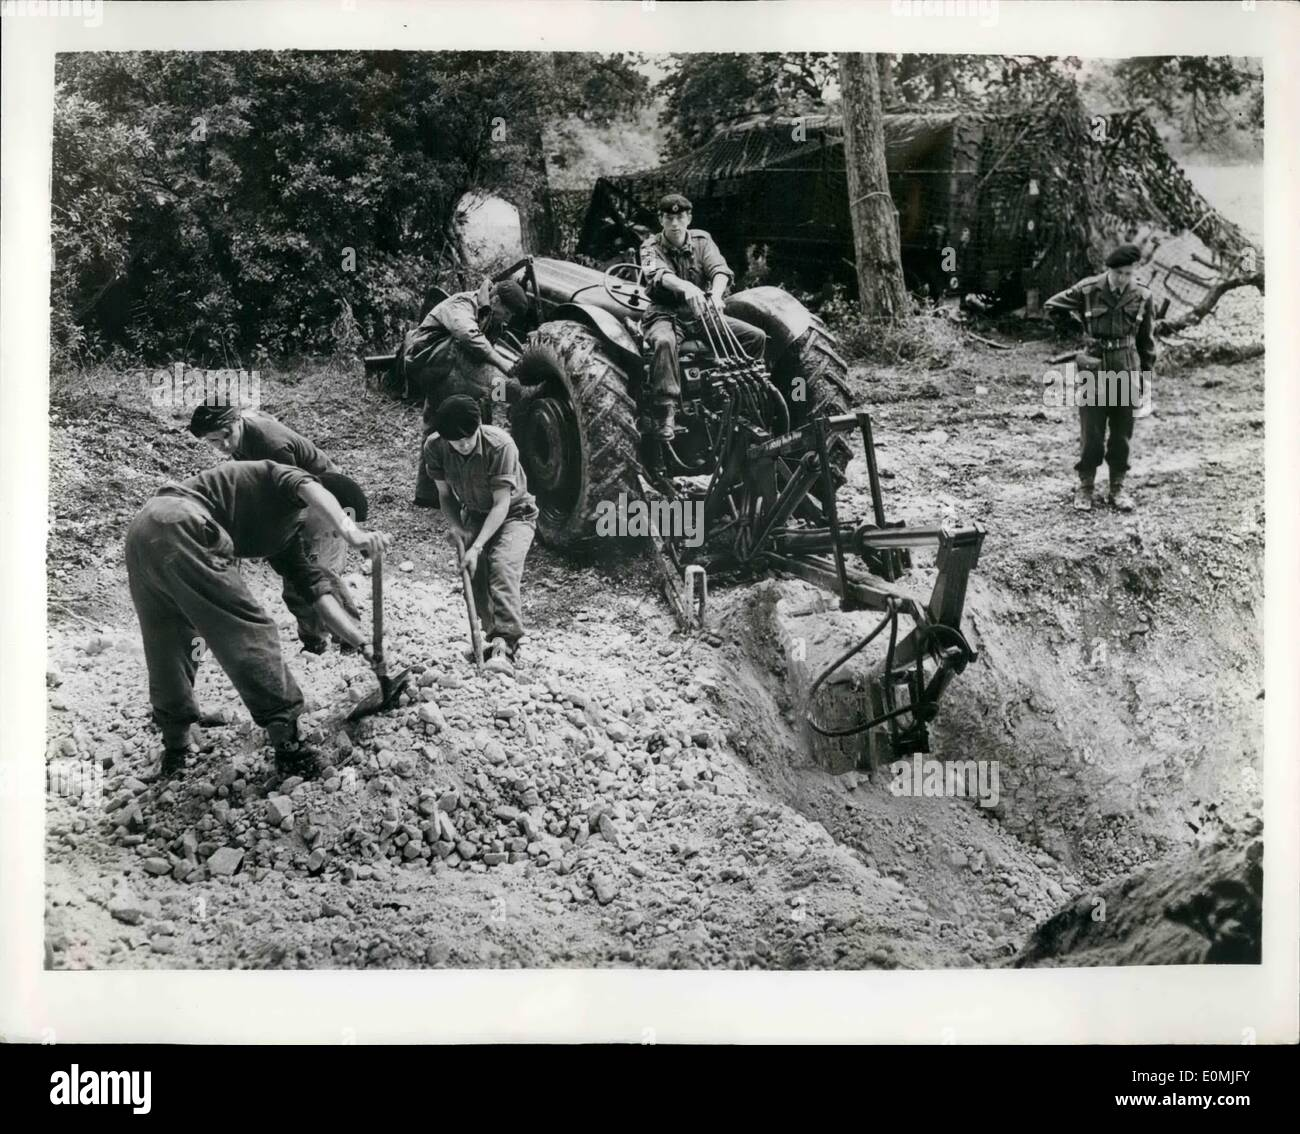 Sep. 09, 1955 - ATOMIC WARFARE DOES NOT OUTDATE SHOVELS: Soldiers past and present will be sorry to note that although twelve ''Dinkums'', new lightweight hydraulically-operated diggers, were used in a recent atomic warfare exercise of Britain's Territorial Army, shovels were also in evidence. But the Dinkums, each capable of shifting five cubic yards of earth an hour,did make possible the digging of a hole for an underground brigade headquarters in 1 1/2 hours. Into the hole end-on-end went two iron tubes 7 ft. 6 ins. in diameter. A topping of an 18-inch layer of sandbags completed the job - Stock Image